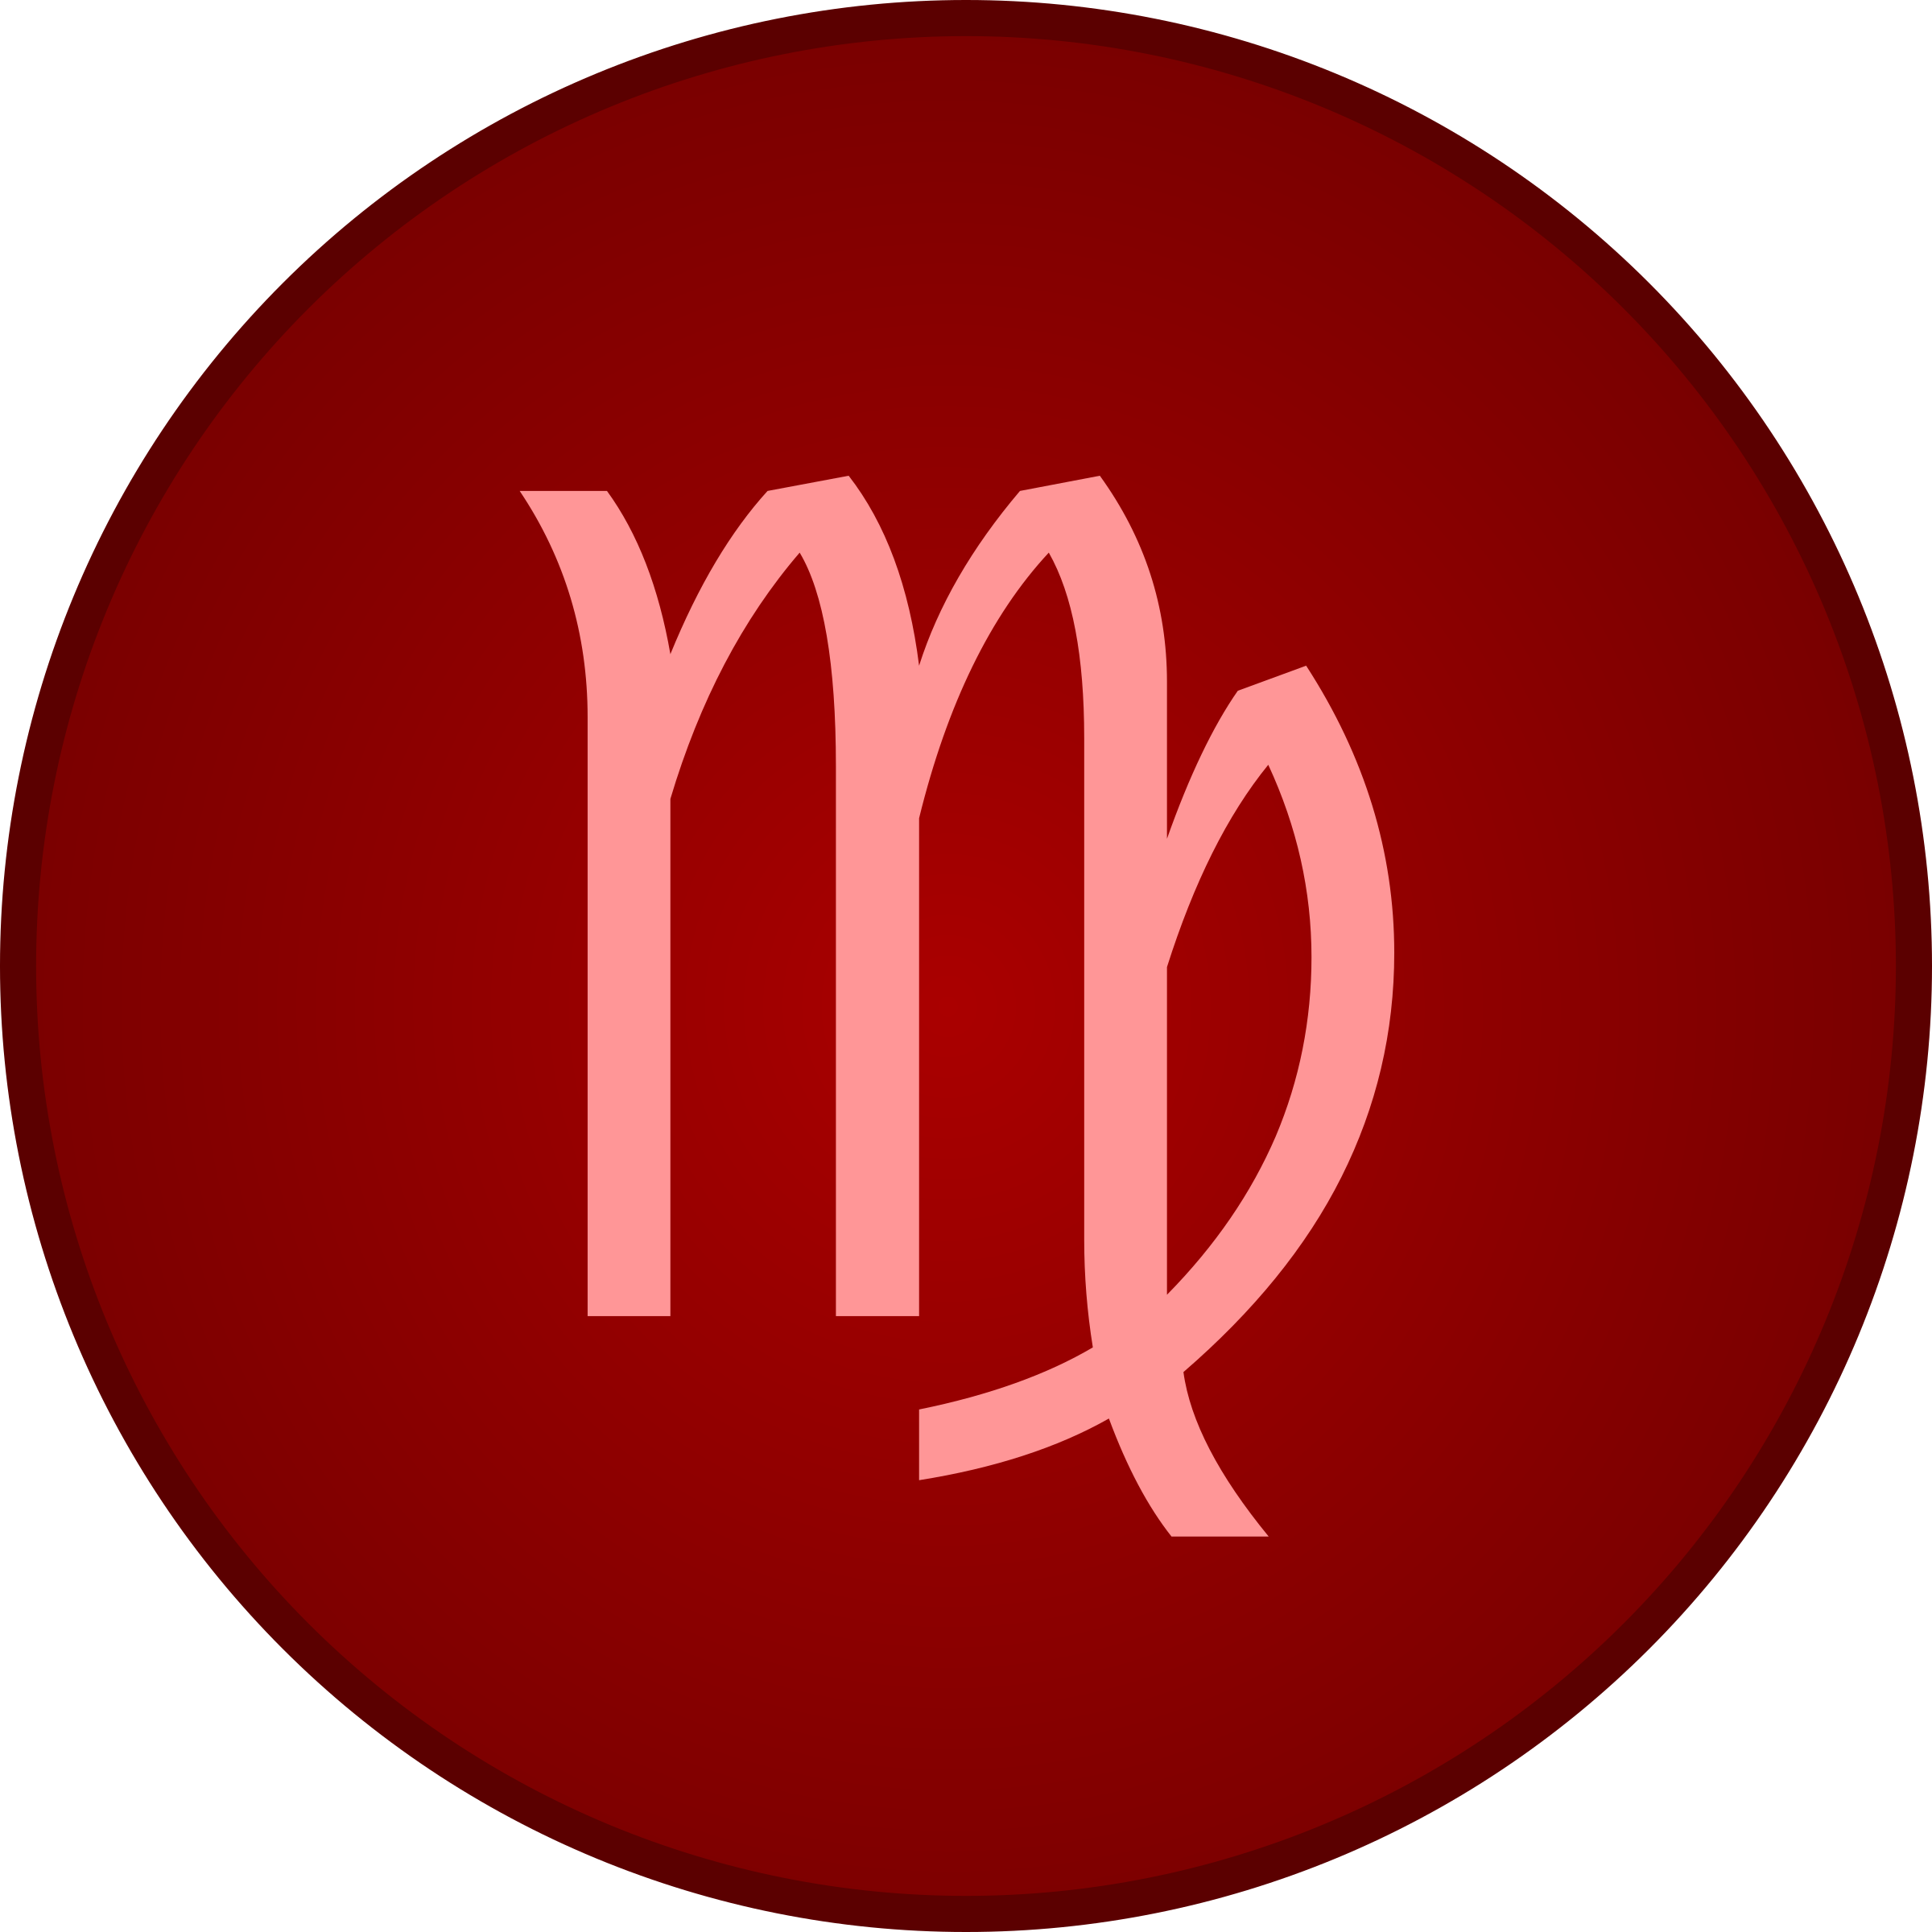 Virgo symbol by Firkin